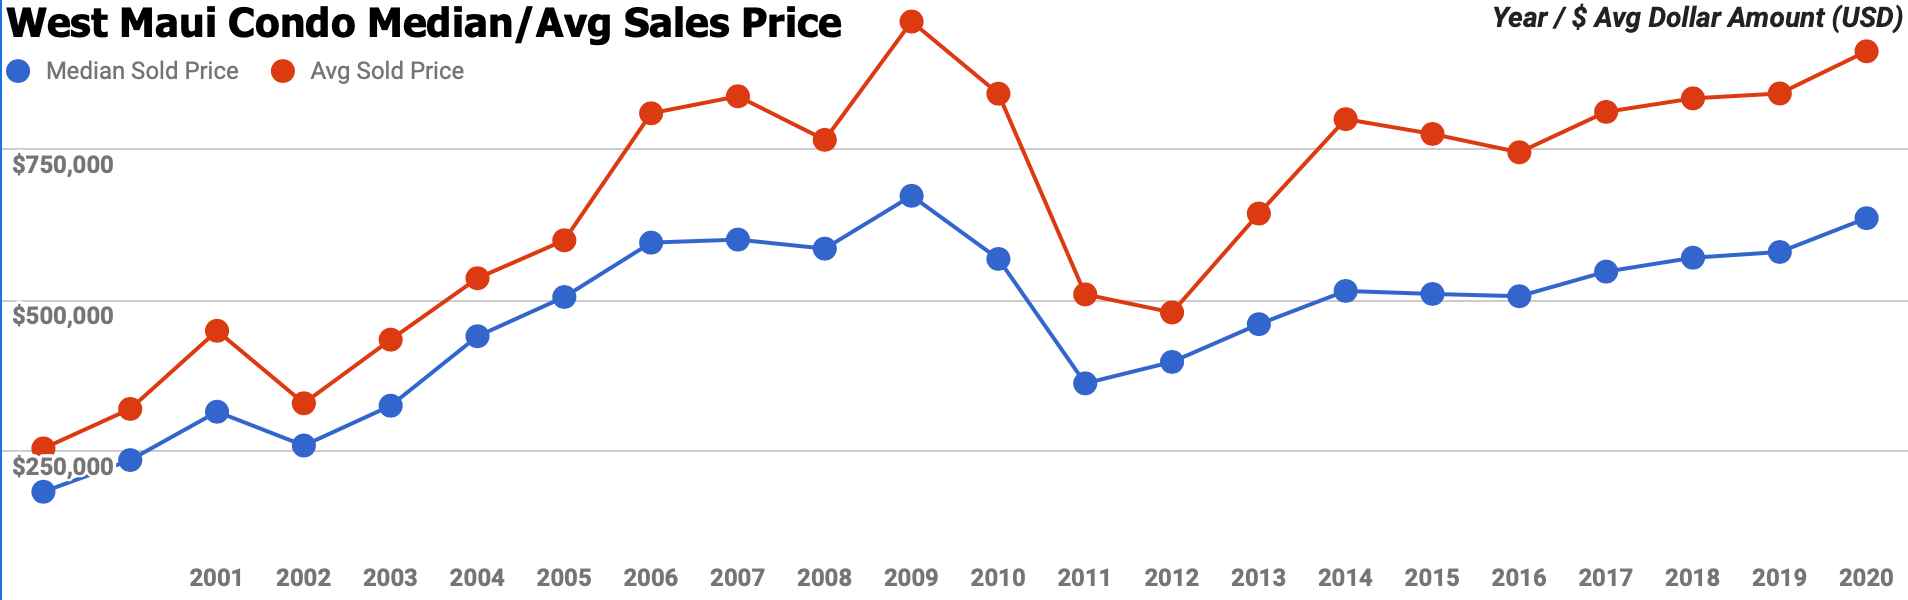 west maui condo average and median sales price